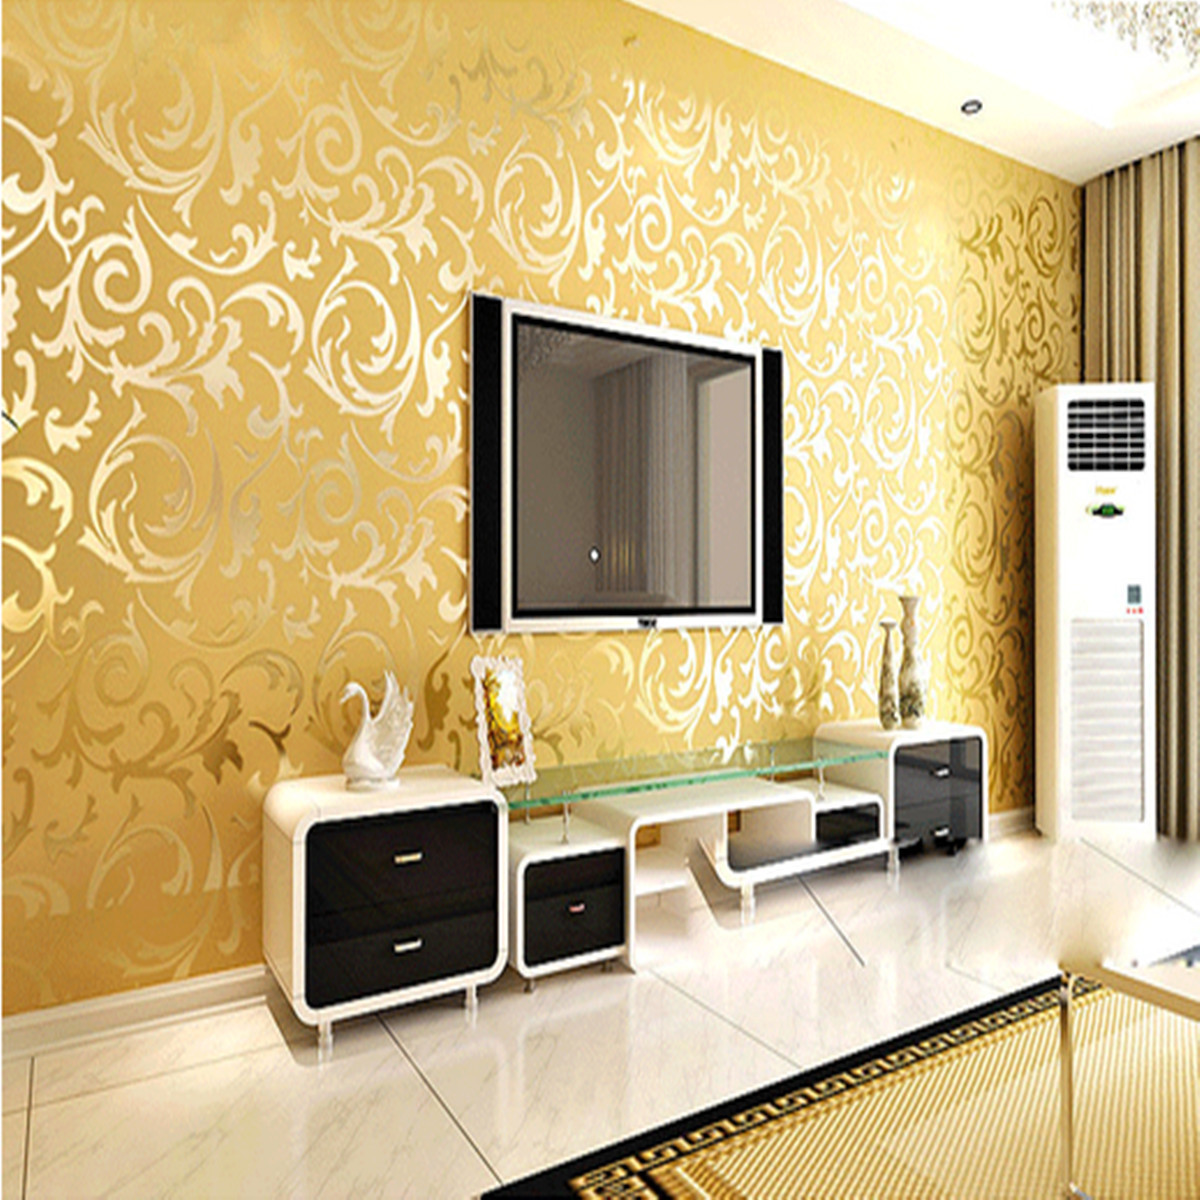 Wallpaper Roll Damask Textured Embossed Home Decor 10M Gold